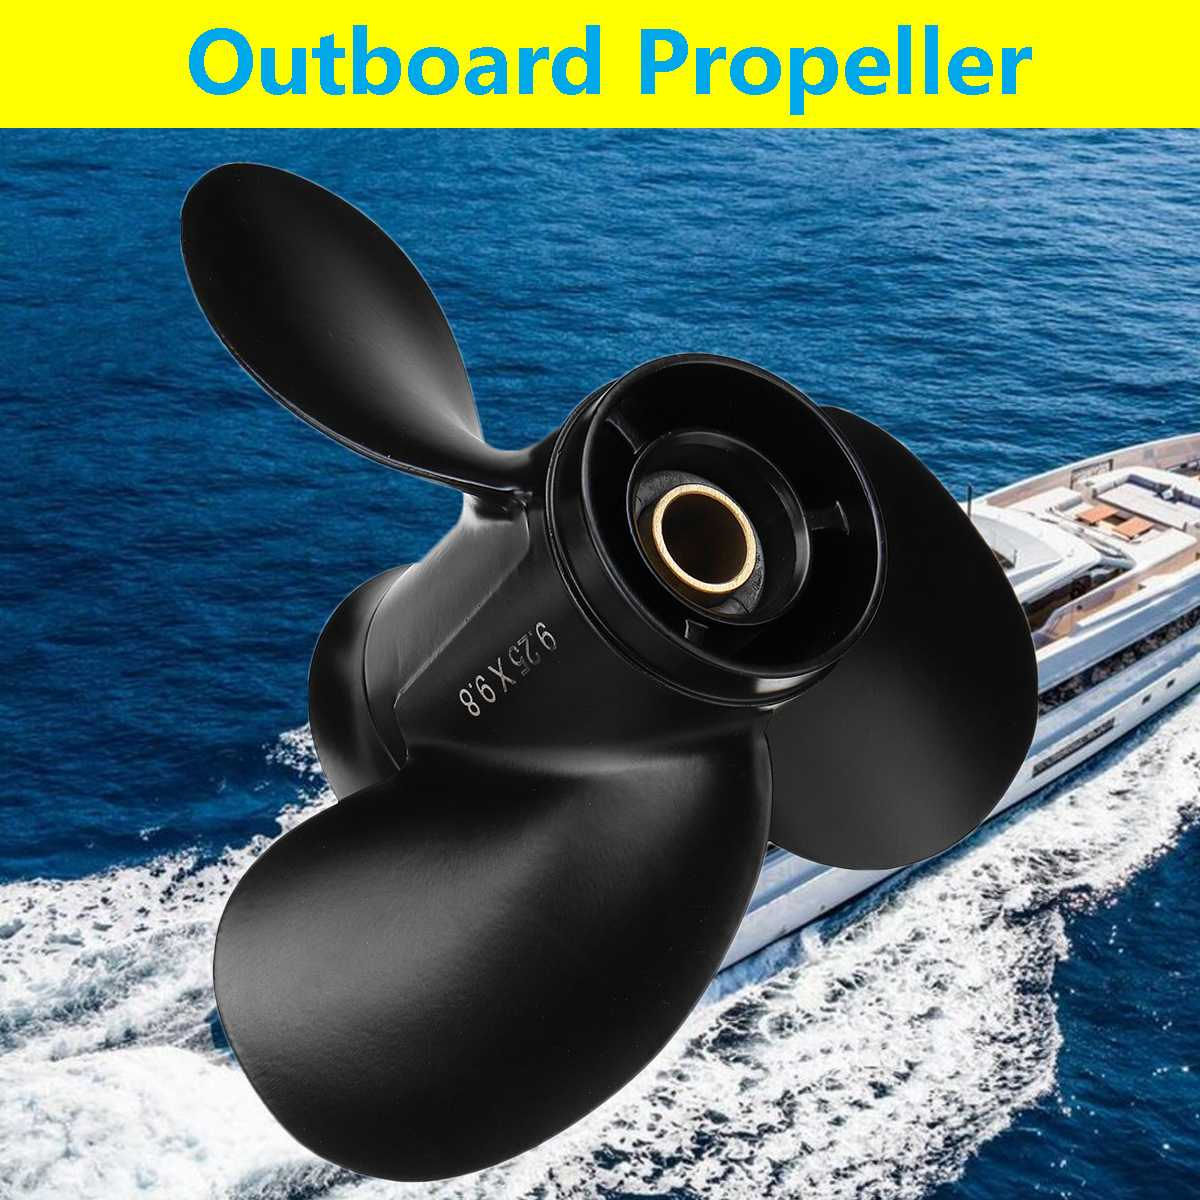 362B641080 For Tohatsu-Mercury 9.9-20HP 9.25 X 9.8 Aluminum Outboard Propeller 14 Spline Tooth 3 Blades Standard Rotation Black